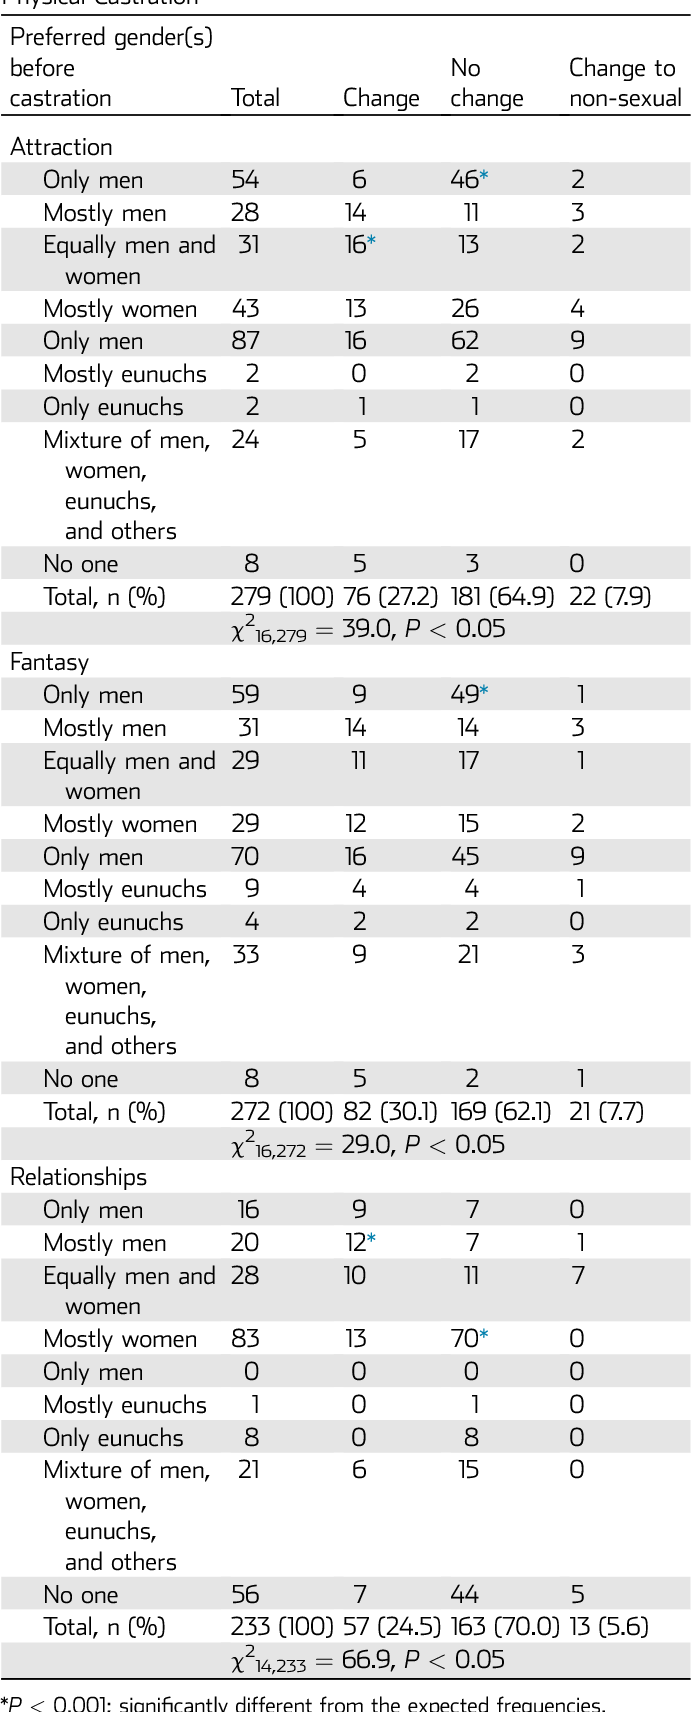 Gender Preference in the Sexual Attractions, Fantasies, and